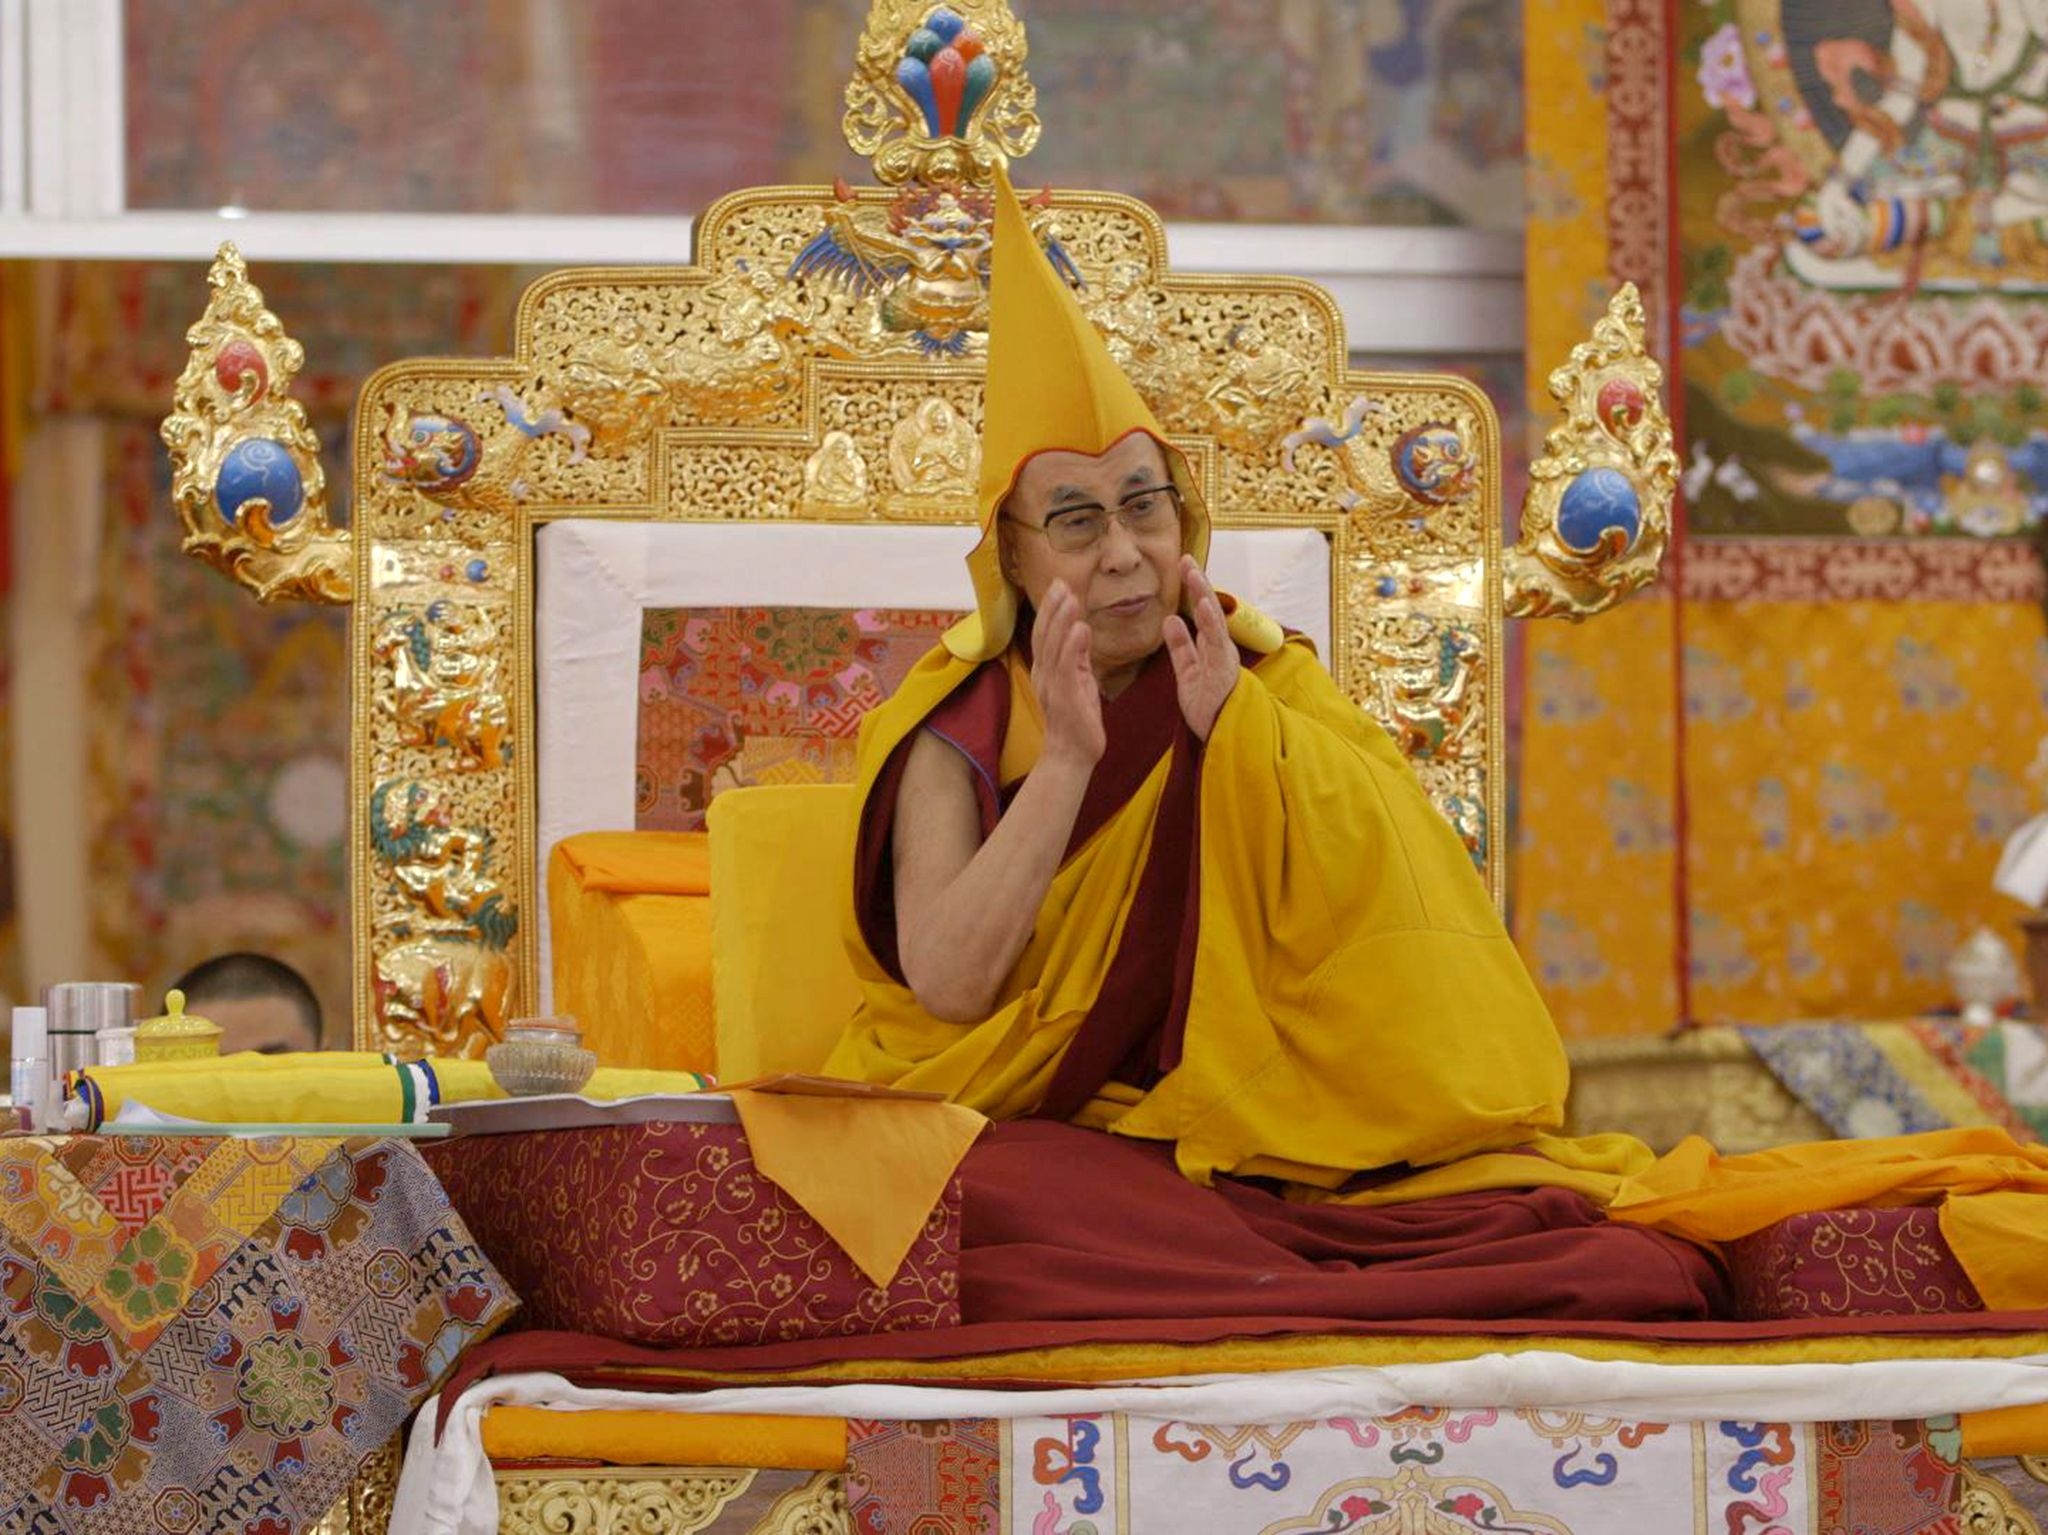 Bodh Gaya, Bihar, India: His Holiness The Dalai Lama leading the Kalachakra ceremony. This image... [Photo of the day - آوریل 2017]